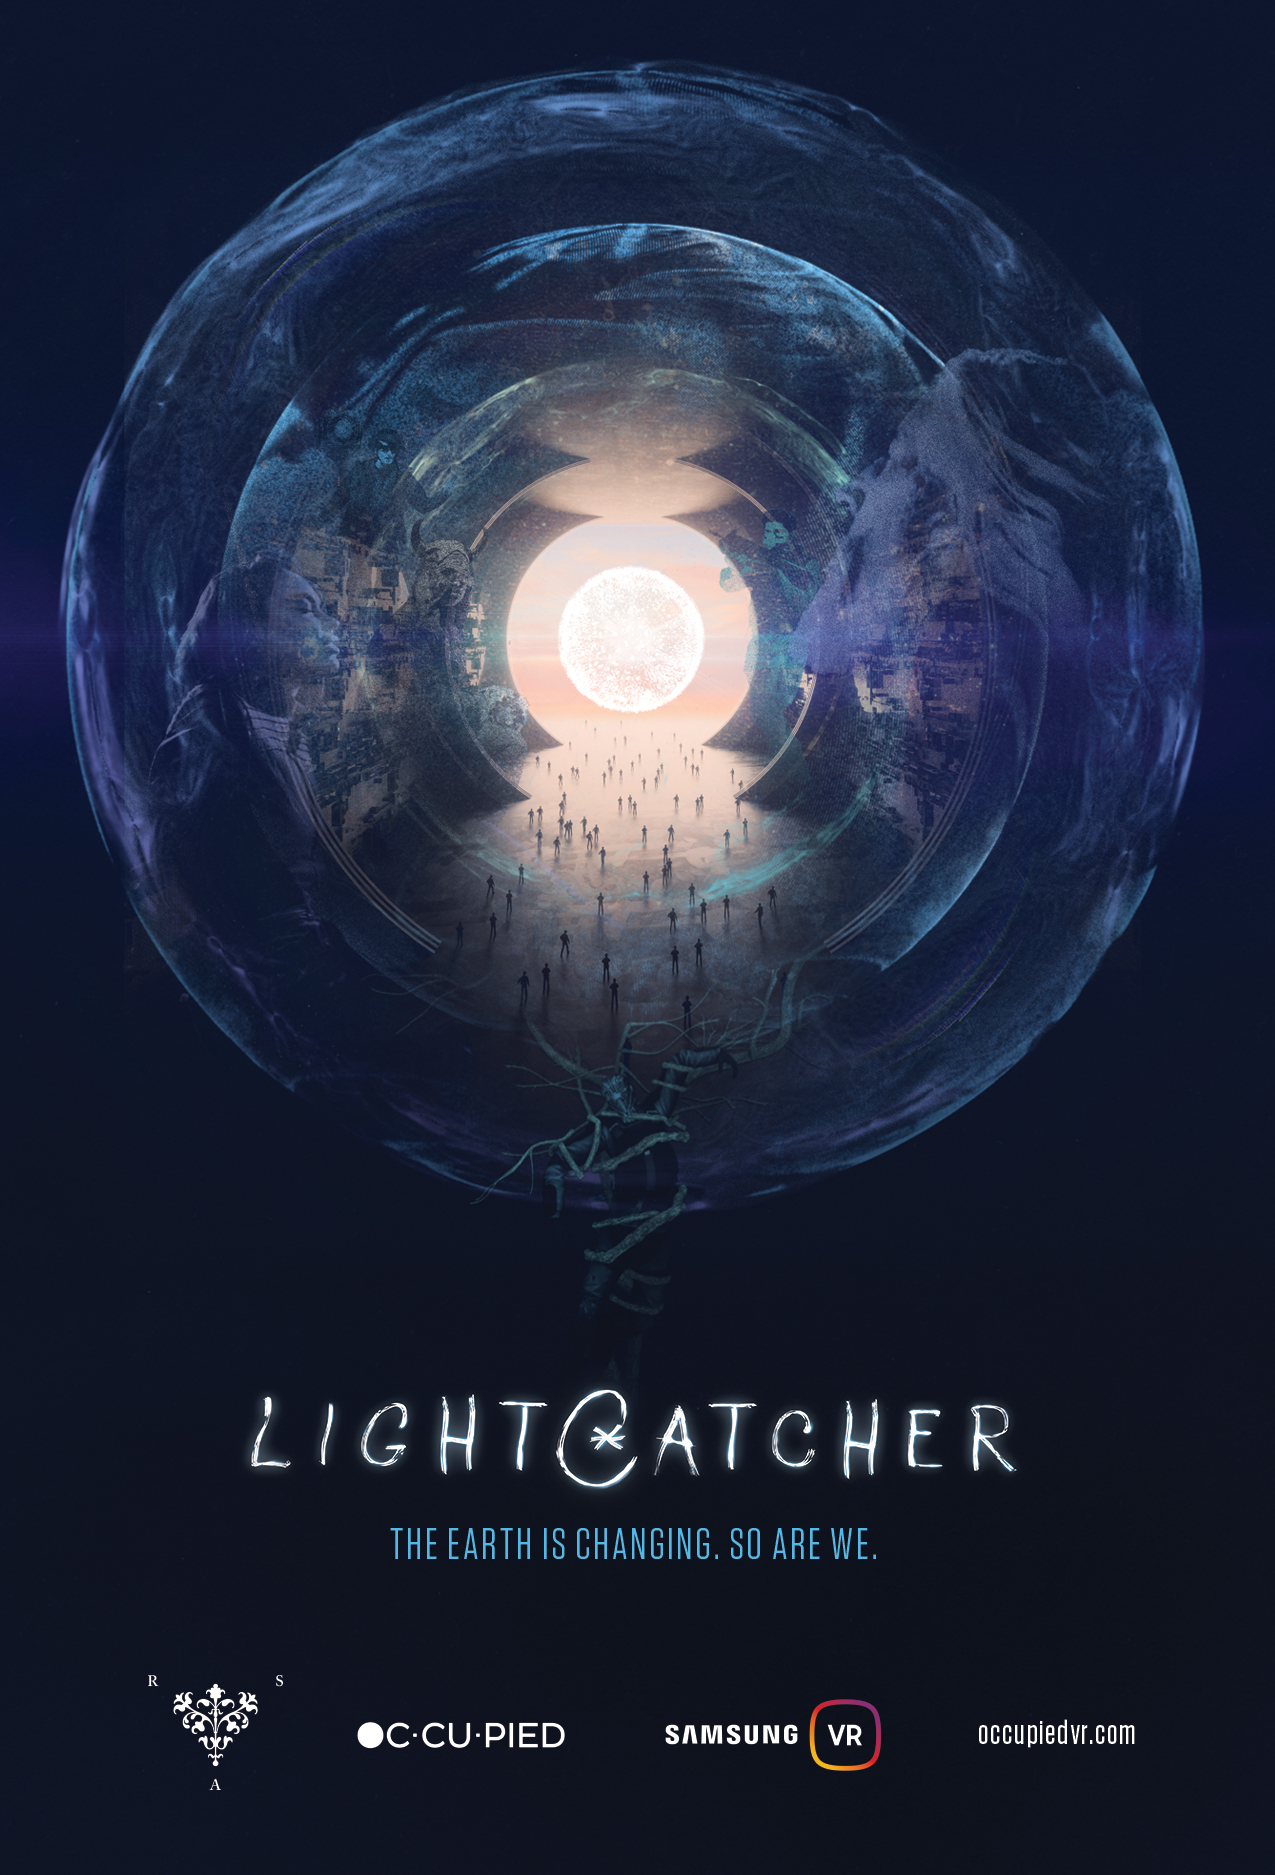 Lightcatchervr Poster